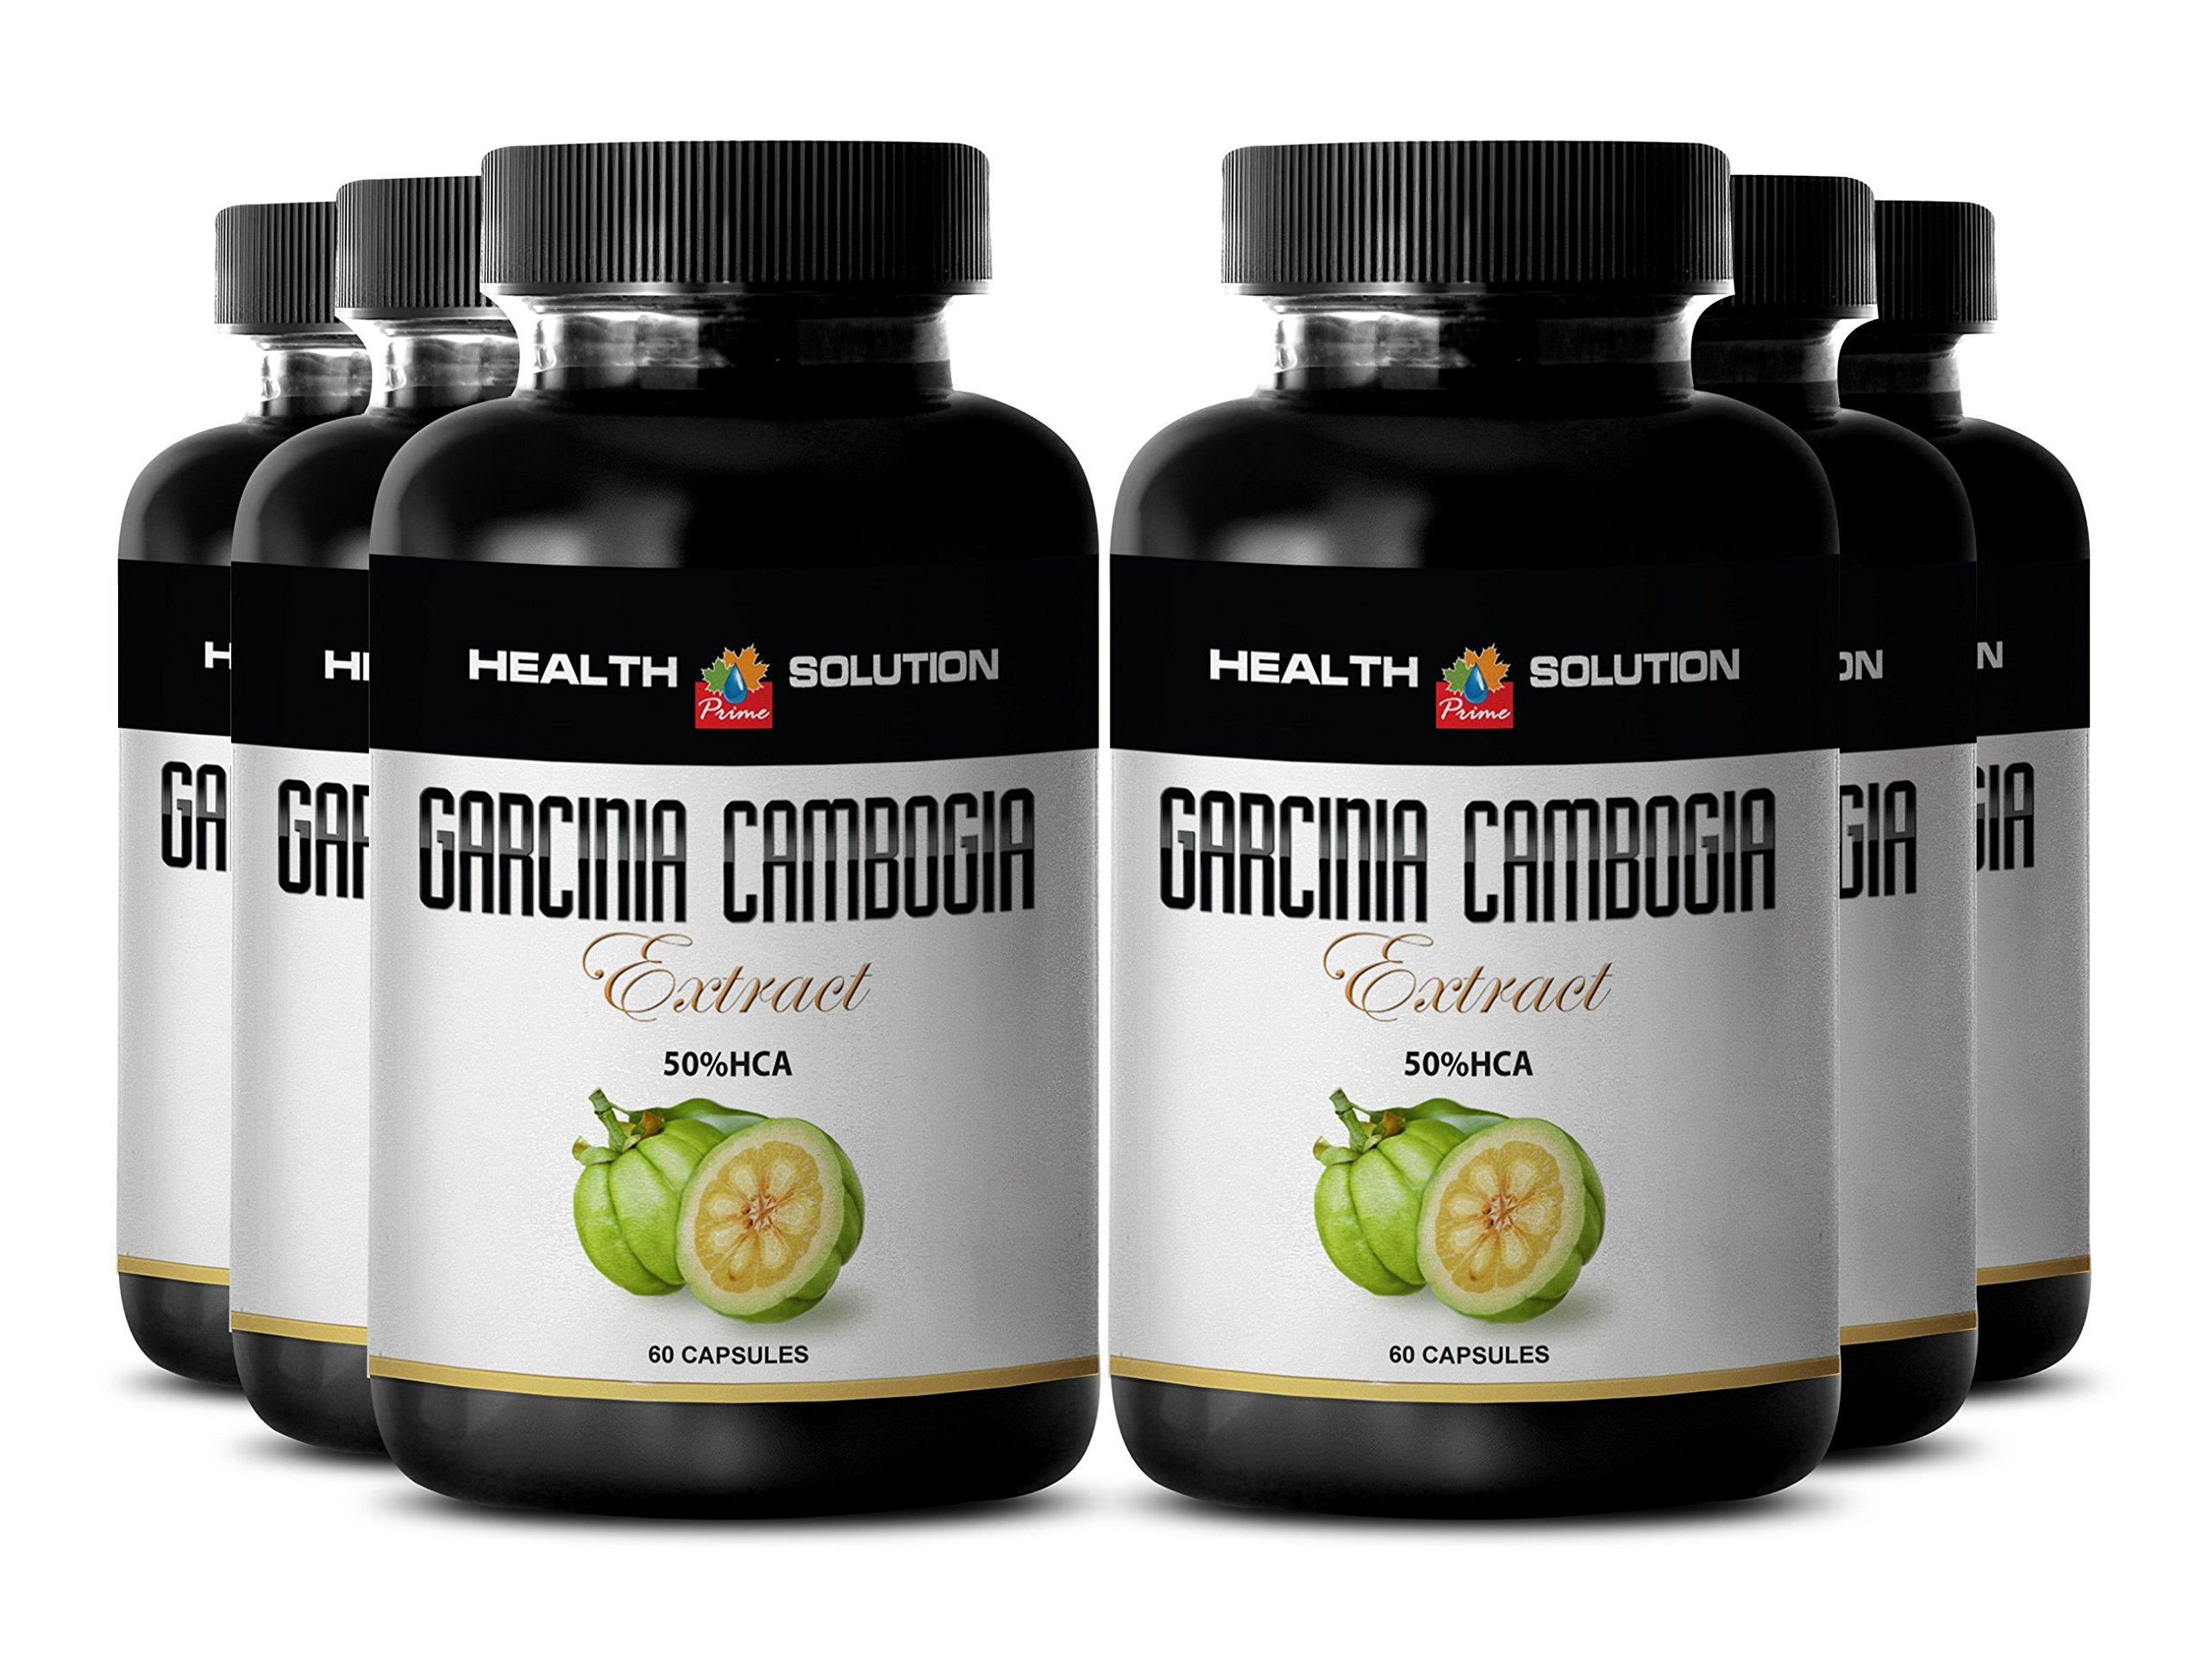 Garcinia cambogia seeds - GARCINIA CAMBOGIA - prevent from stress (6 bottles)